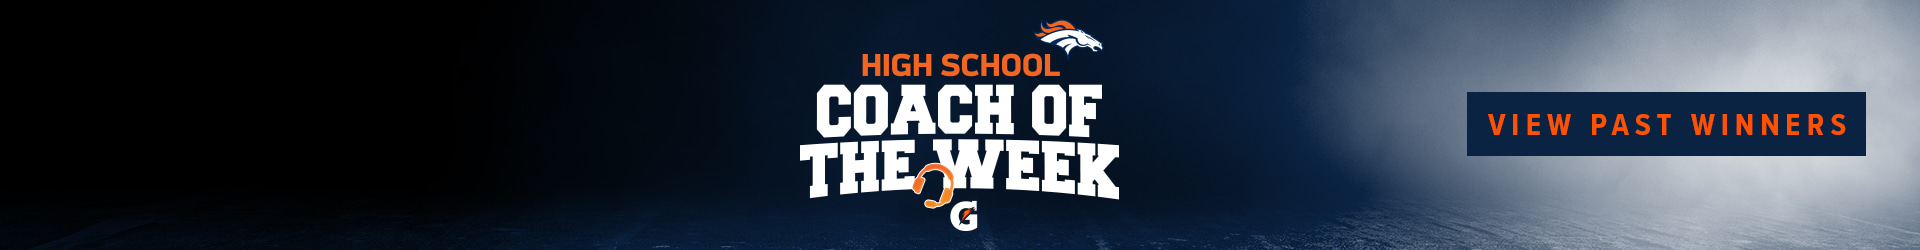 High School Coach of the Week